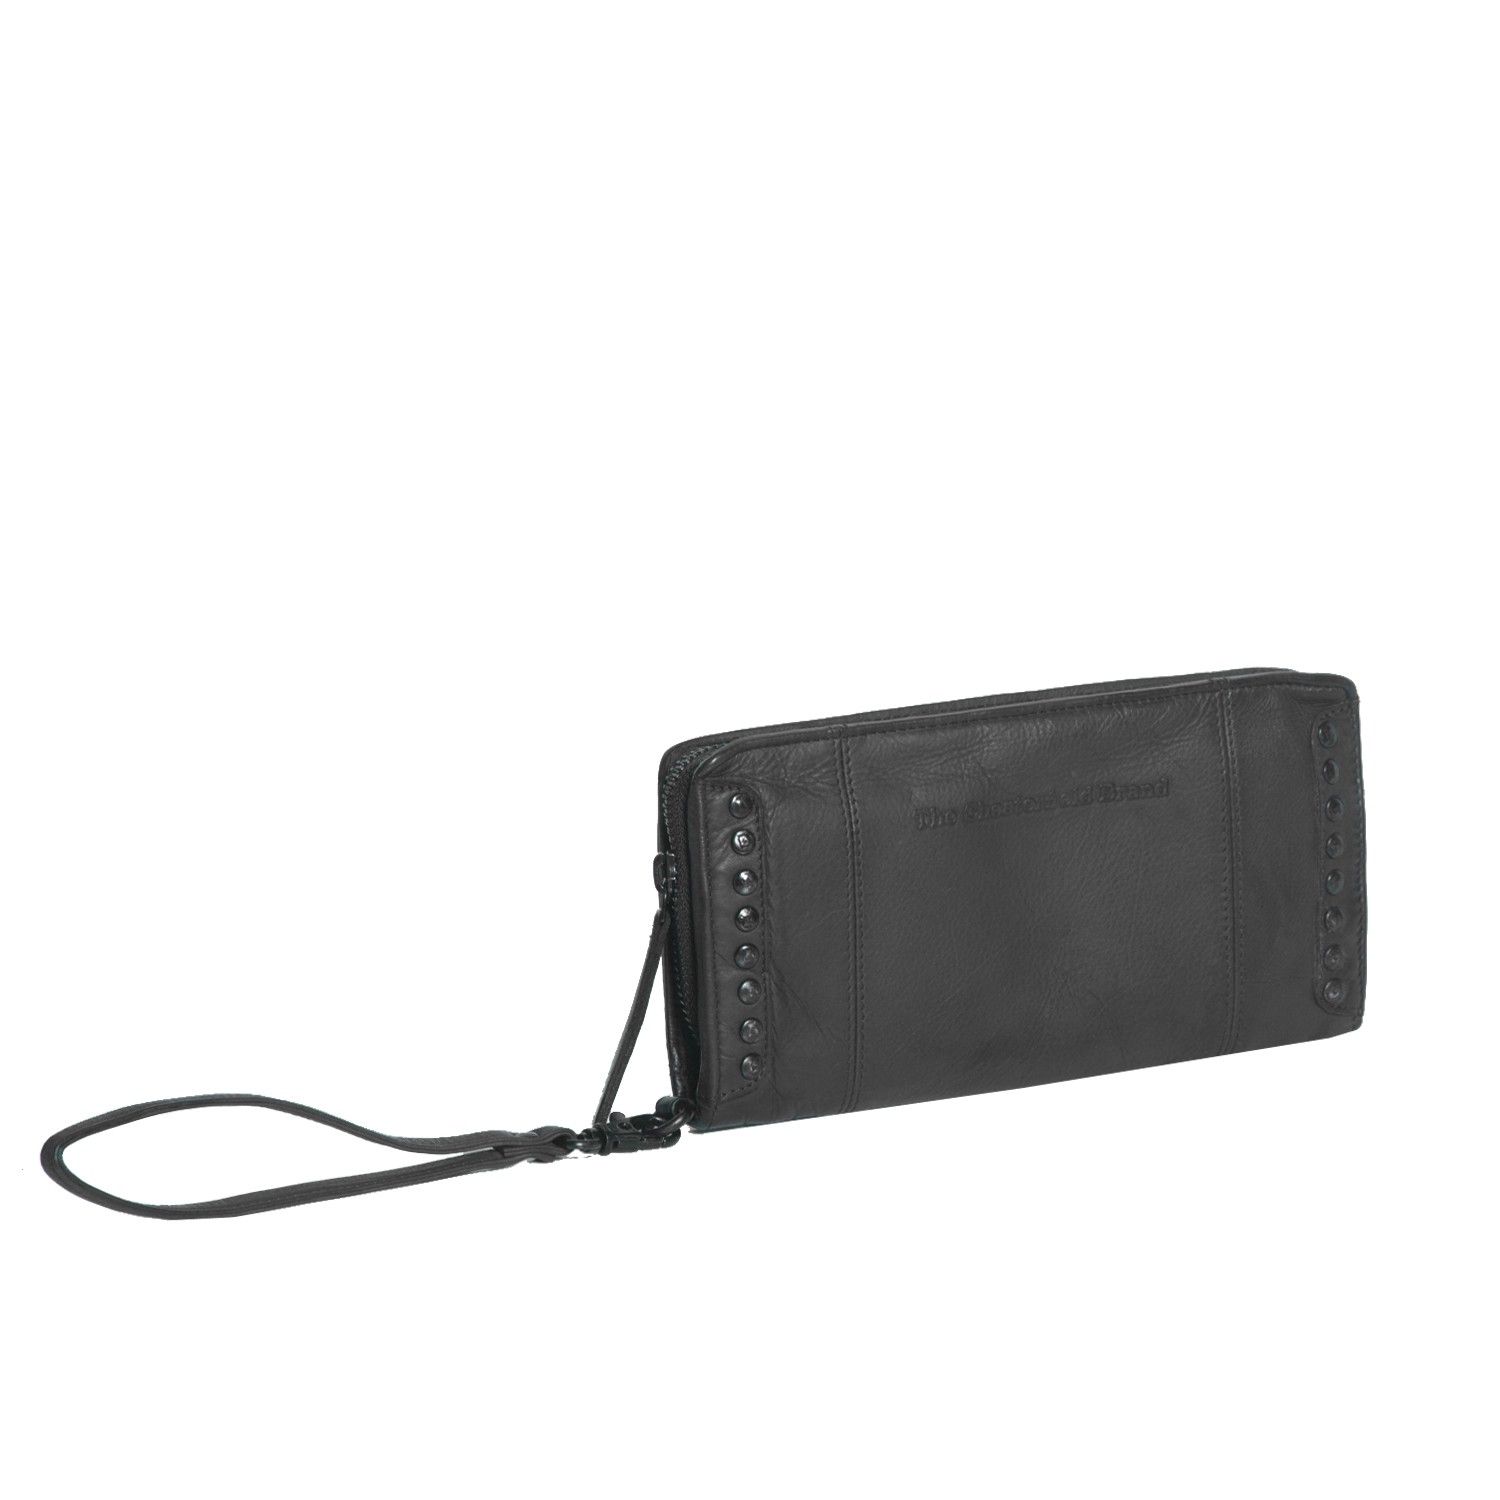 Bilde av Chesterfield Leather Clutch Black Label Anthracite Laiza